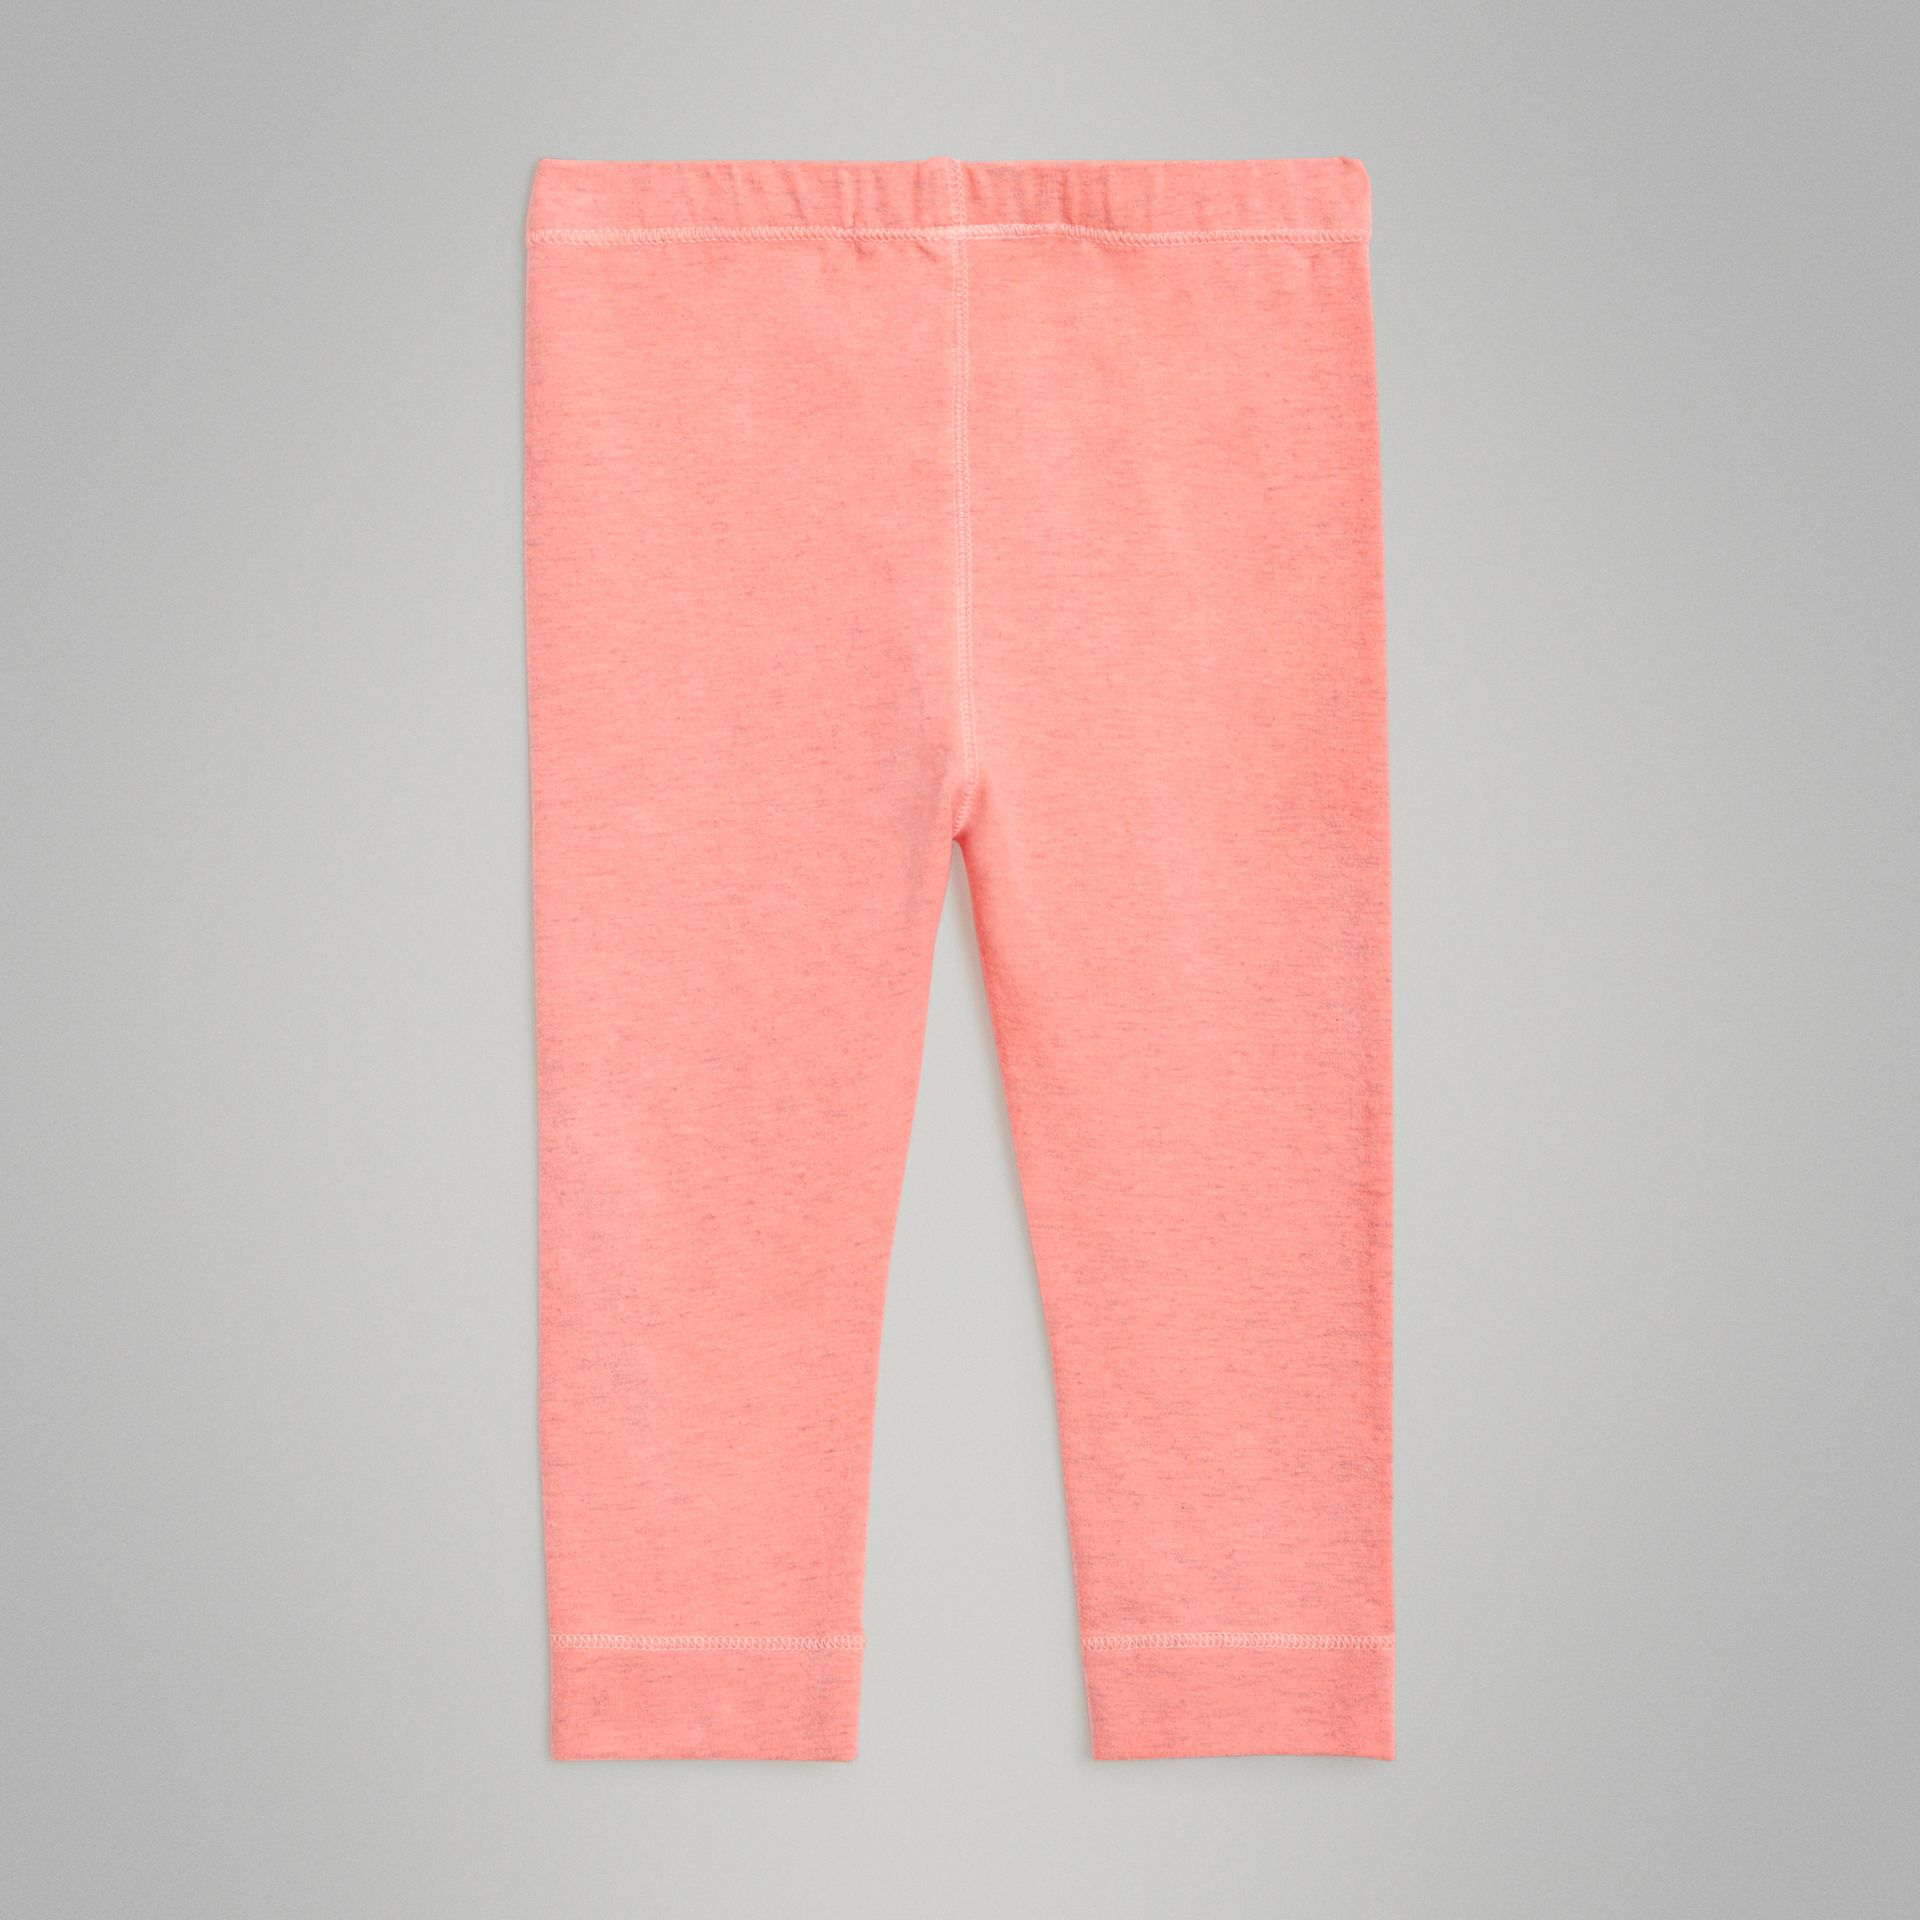 Logo Print Stretch Cotton Leggings in Pale Pink - Children | Burberry Australia - gallery image 3